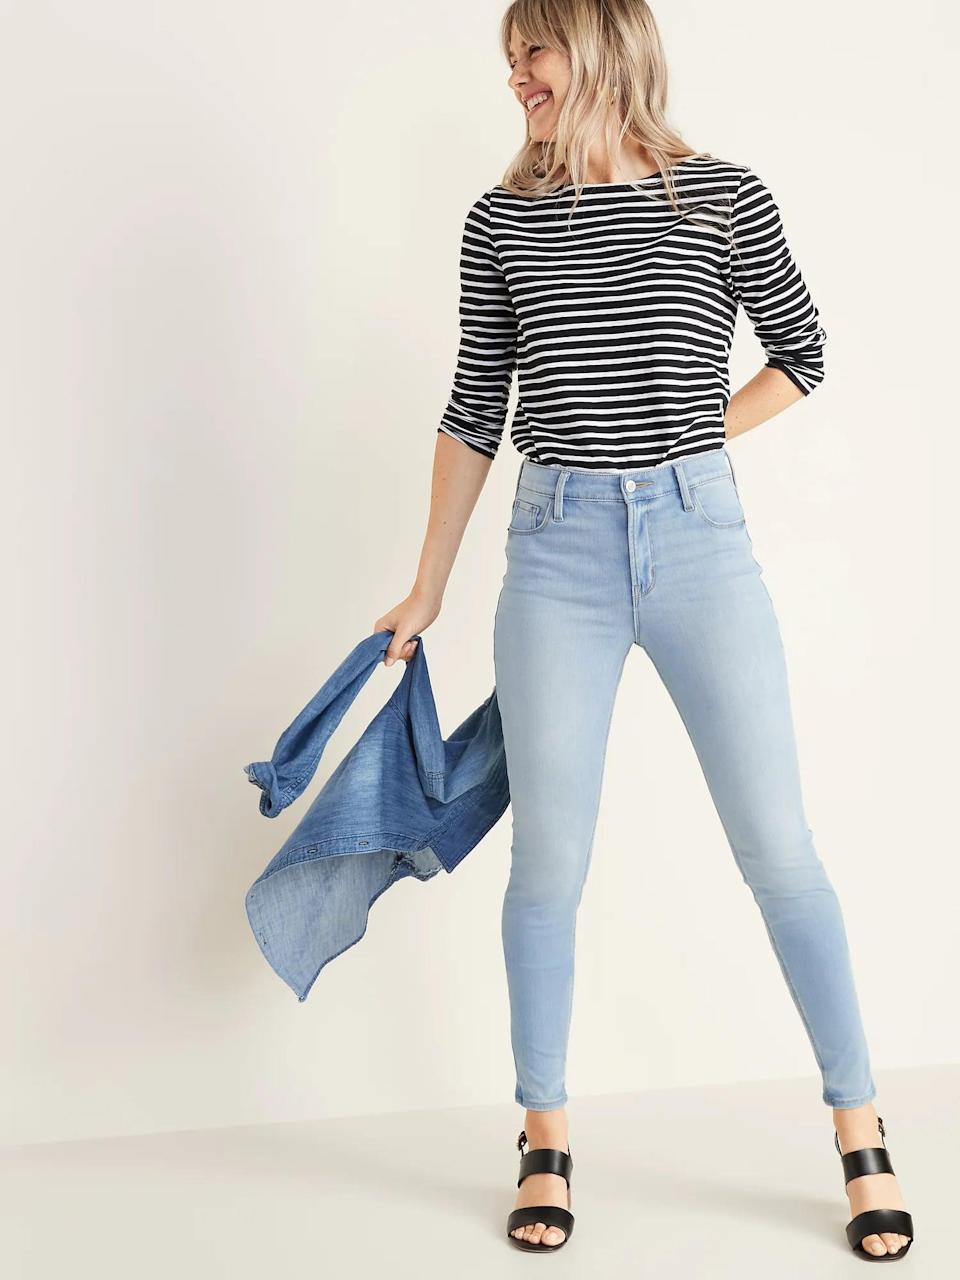 """<p>""""I've had these <span>Old Navy High-Waisted Rockstar 24/7 Sculpt Super Skinny Jeans</span> ($25, originally $50) for about a year and they have quickly become my favorite pair to throw on with an oversized t-shirt (tucked in), my favorite blouse, or even a hoodie. The light wash makes them perfect for wearing year-round and I love that they're so easy to pair with a belt, boots, sneakers, and more. I could lounge (and have) around in these all day and I would definitely recommend investing in a pair if you're looking for go-to jeans to match your wardrobe every season."""" - Chanel Vargas, editorial assistant, Trending &amp; Viral Features</p>"""